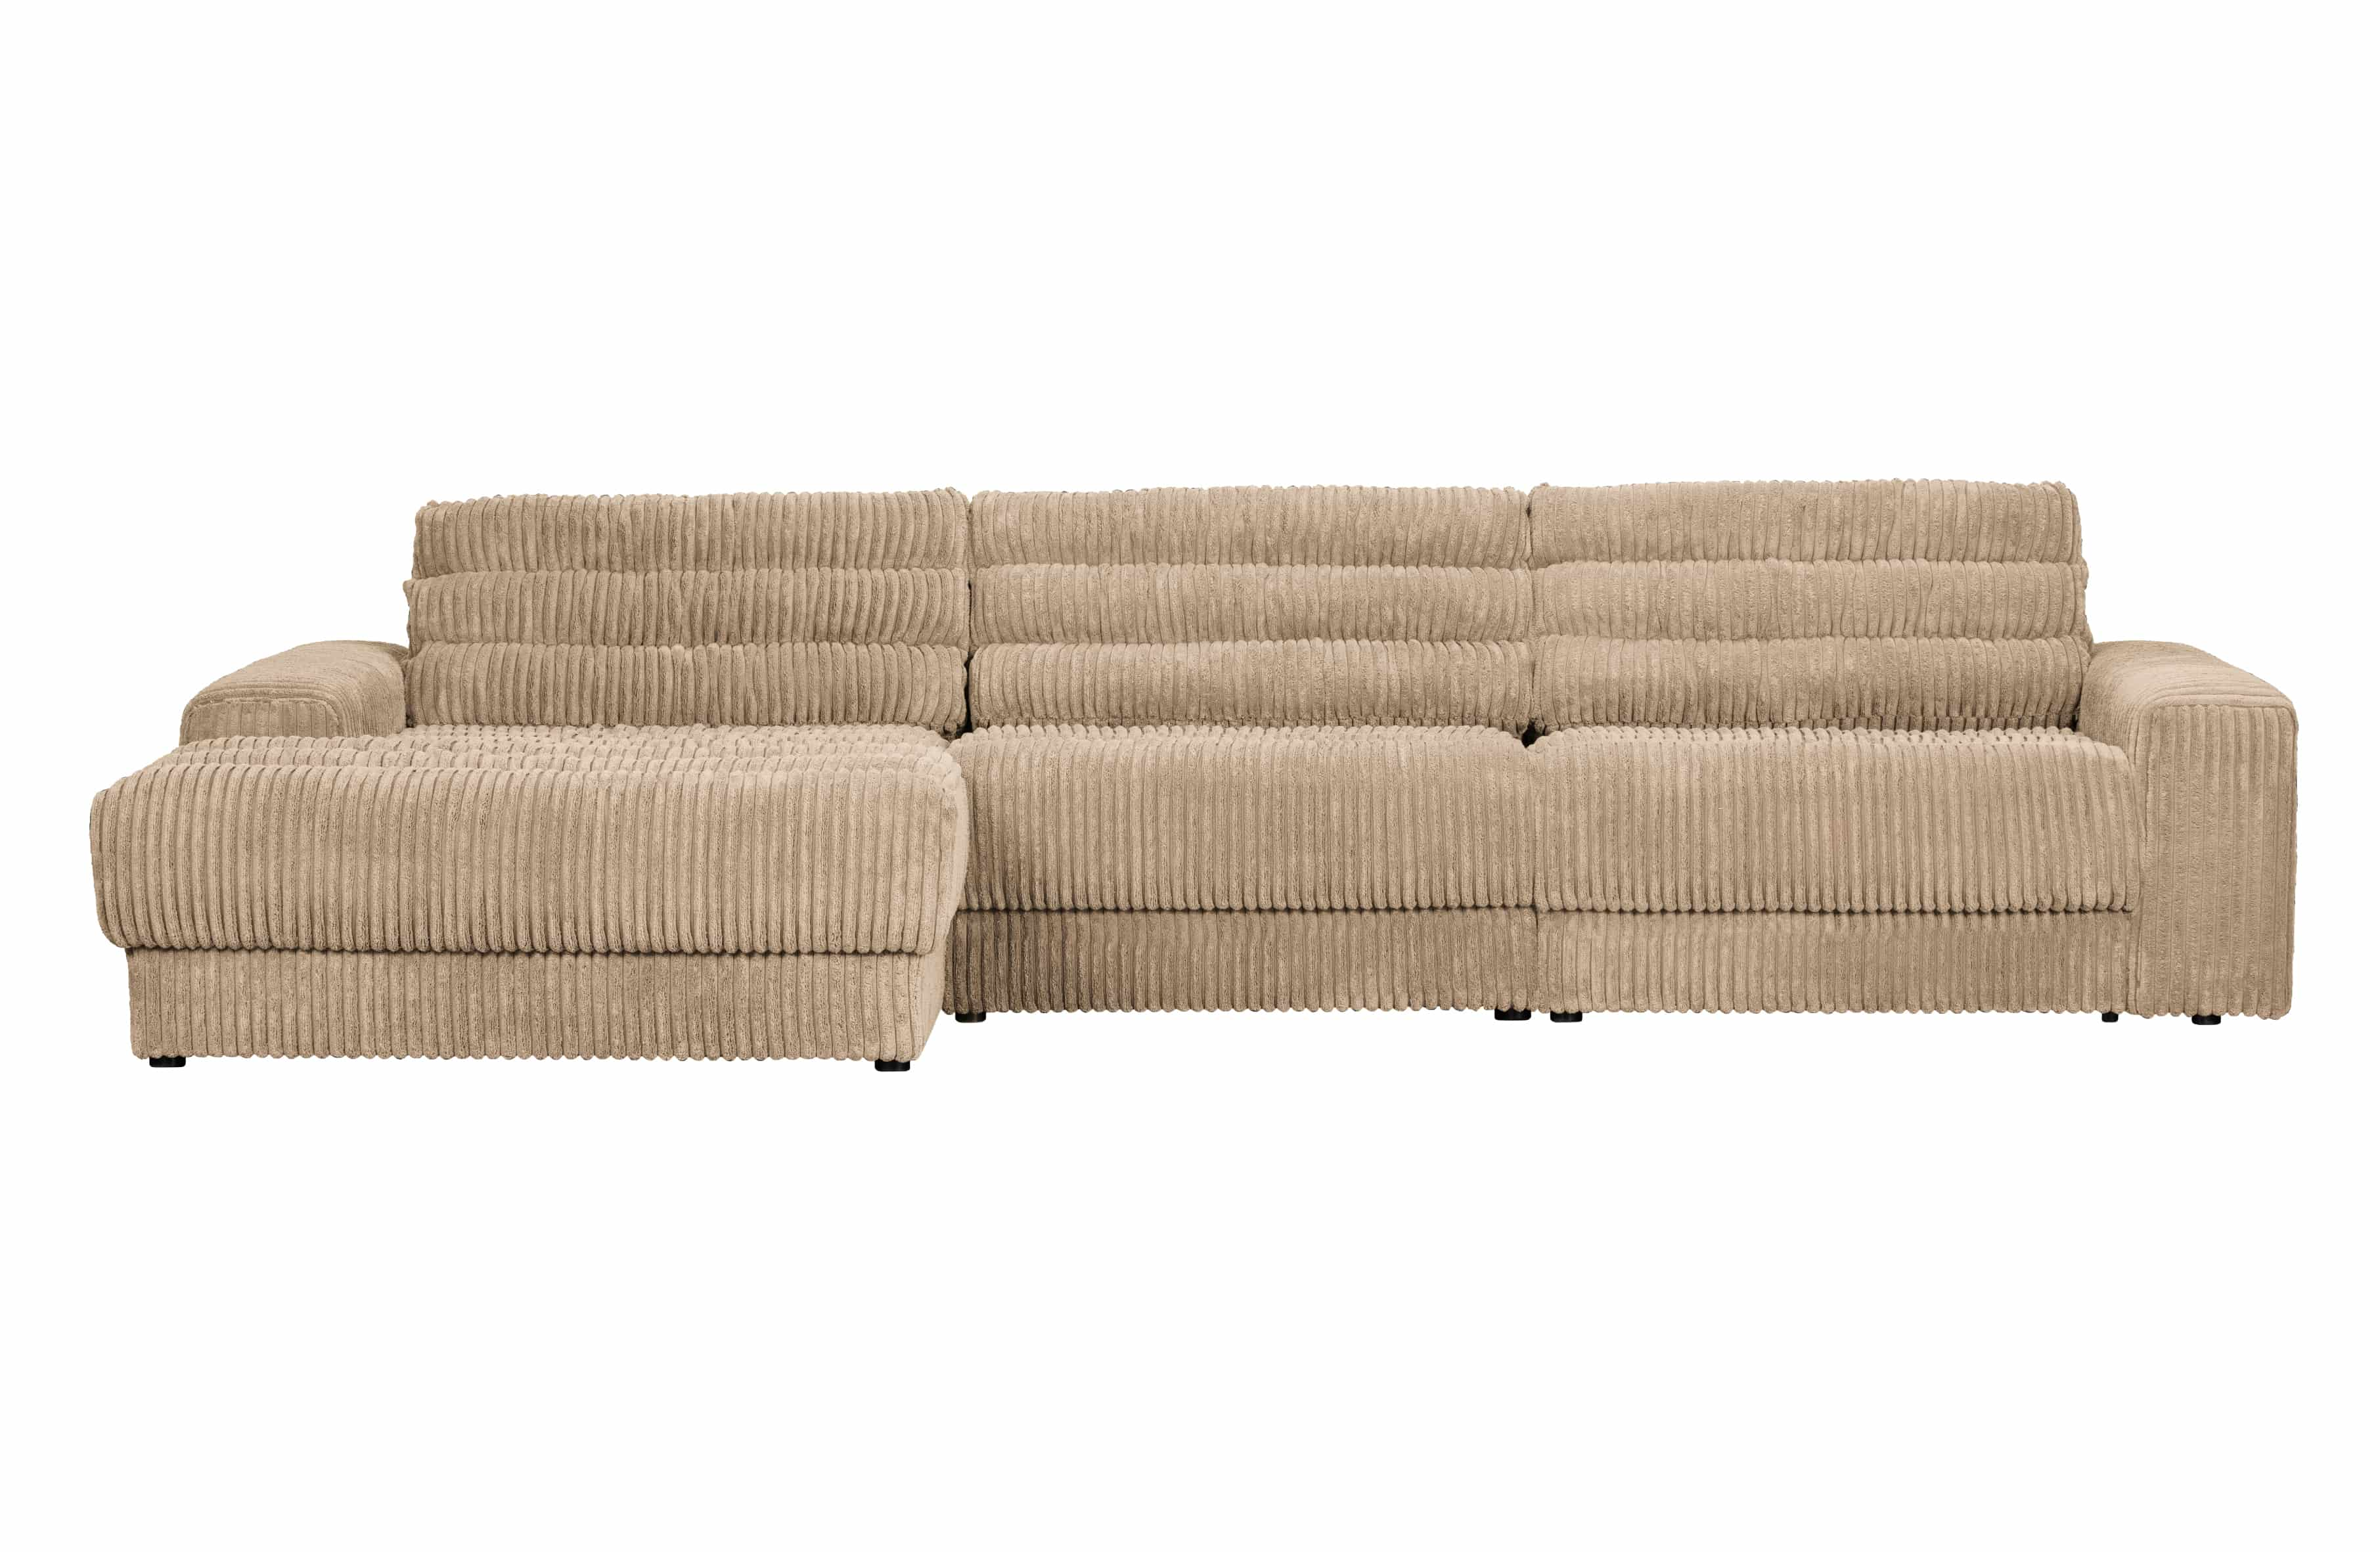 Date Chaise Longue Links Ribcord Travertin